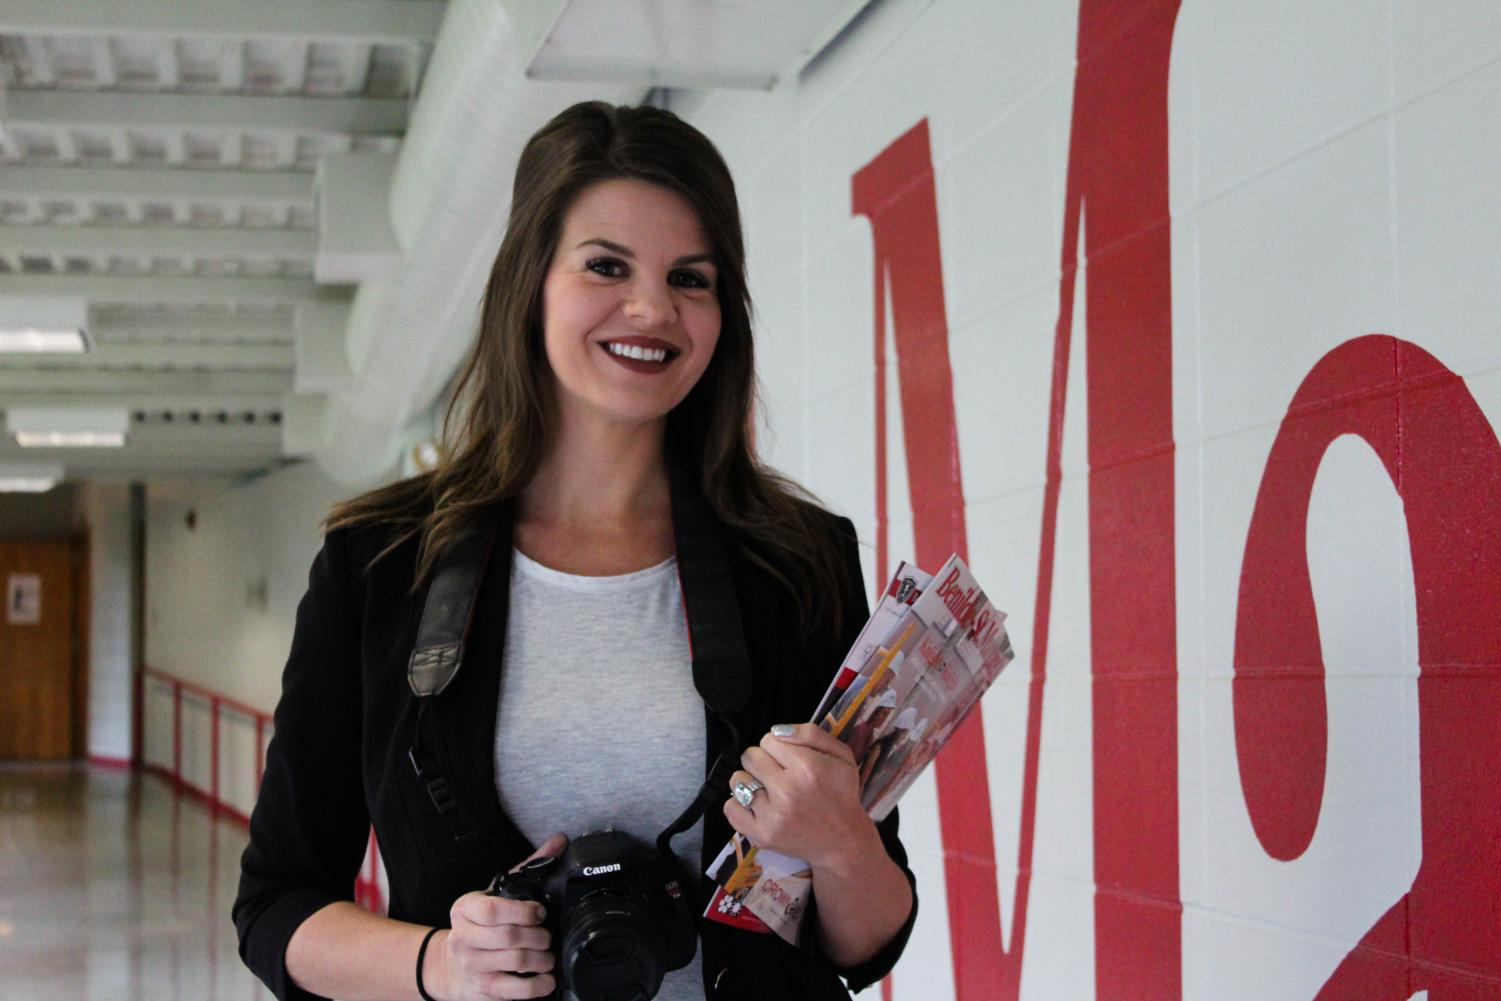 Ms. Megan Brown worked in broadcasting and news for four years before  becoming the Director of Marketing and Communications for BSM.